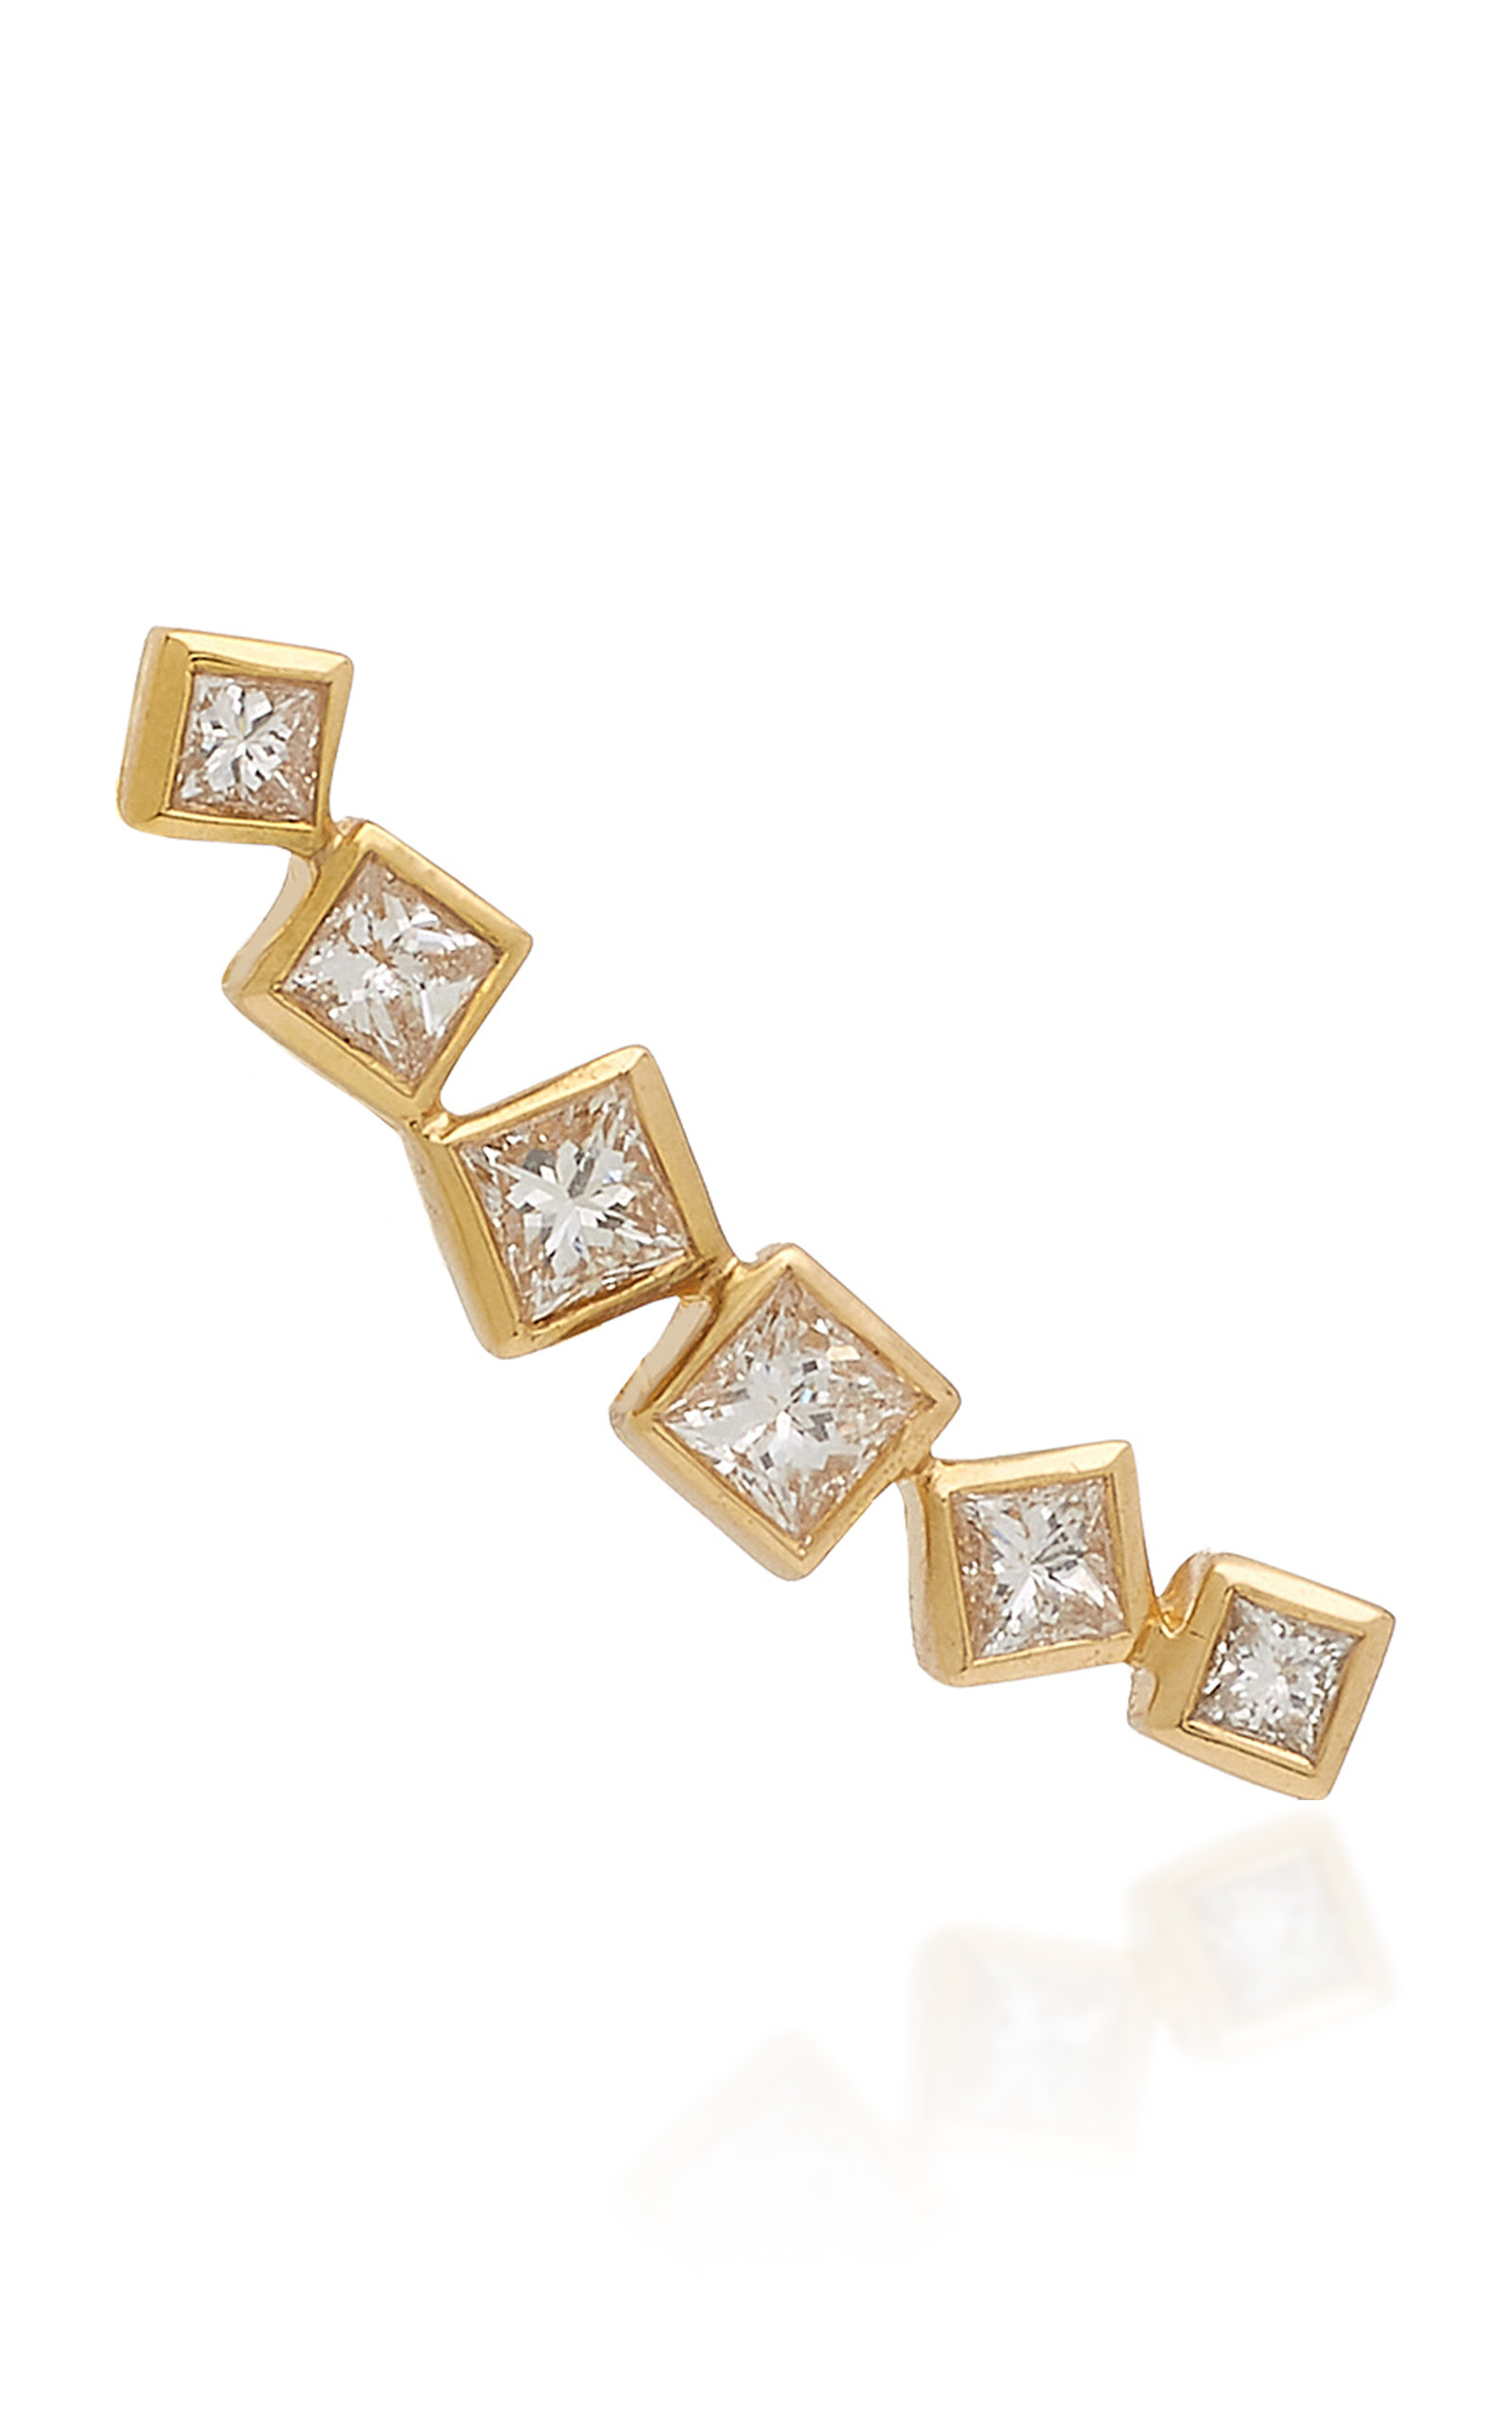 IVY GOLD AND DIAMOND EAR CLIMBER